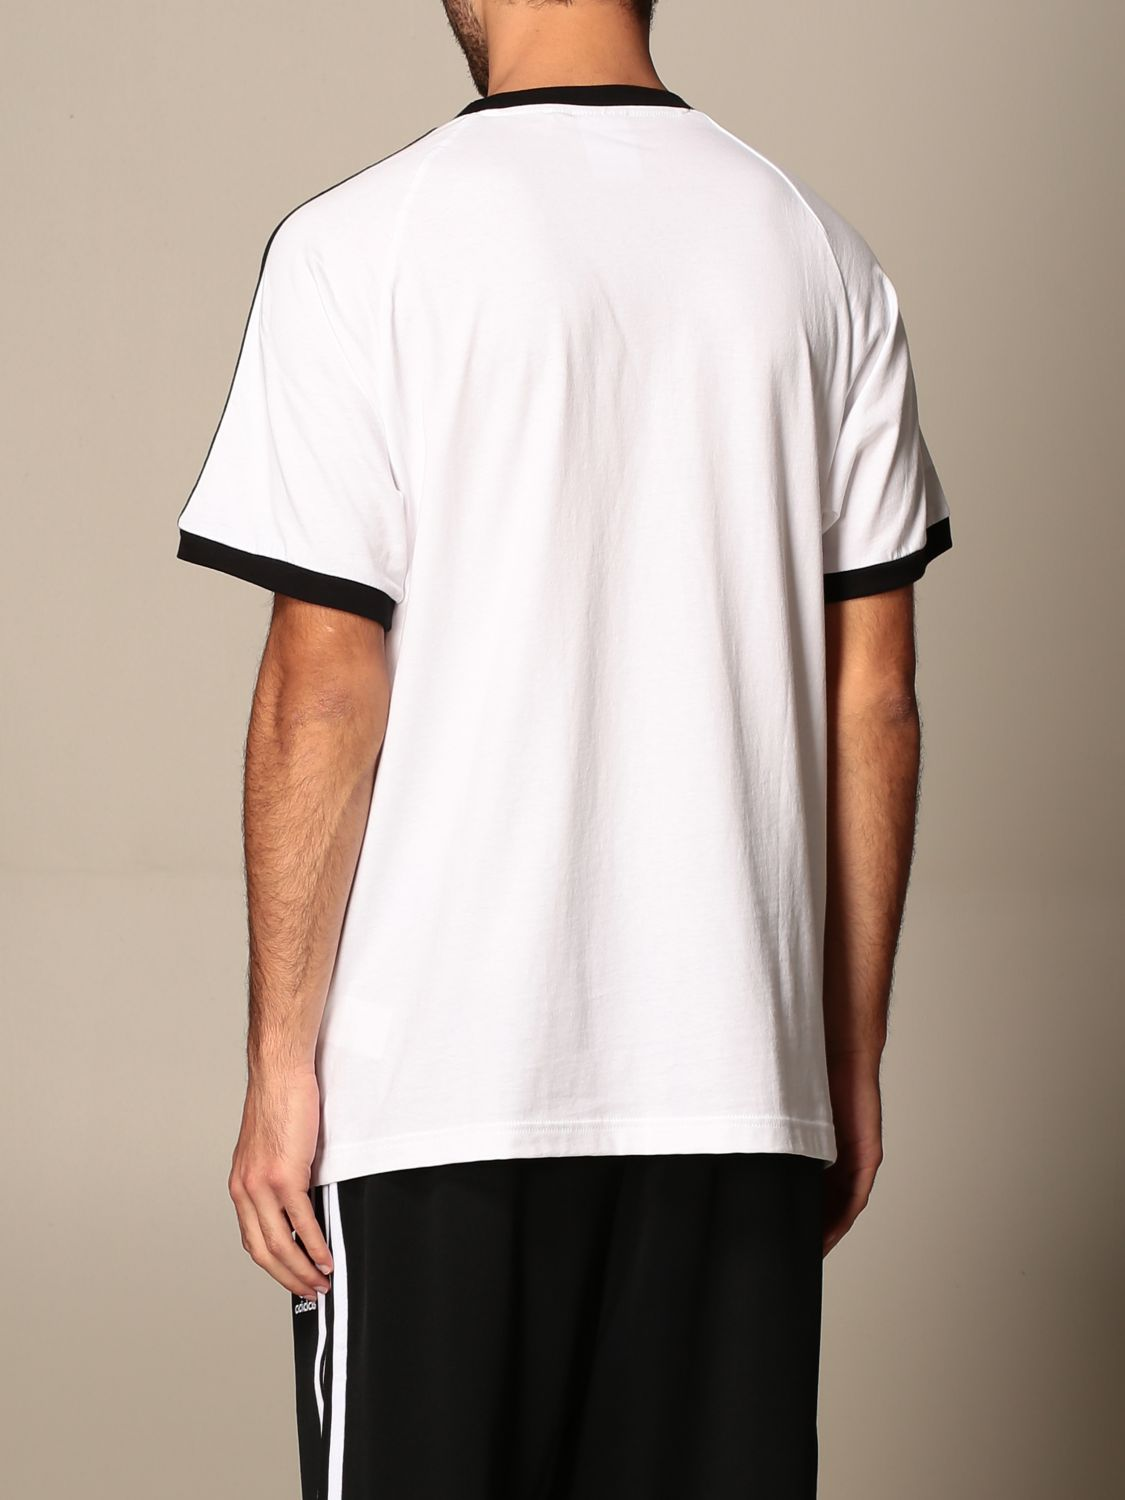 T-shirt Adidas Originals: T-shirt men Adidas Originals white 3